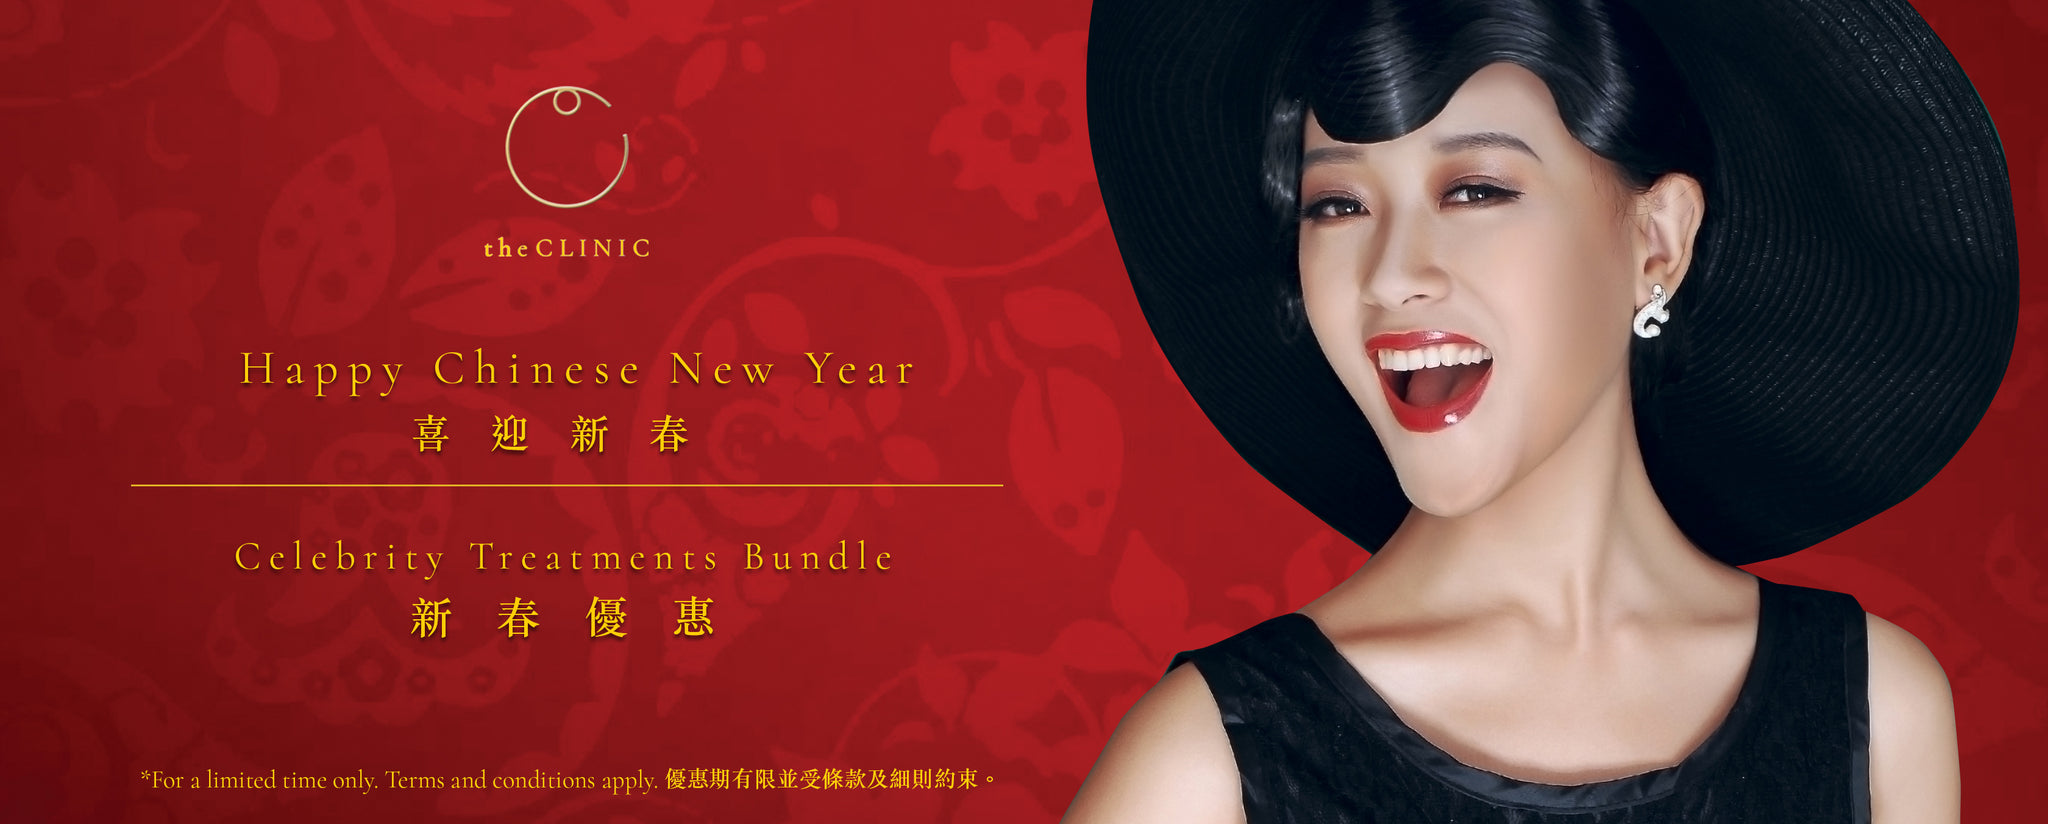 CNY Special Promotion